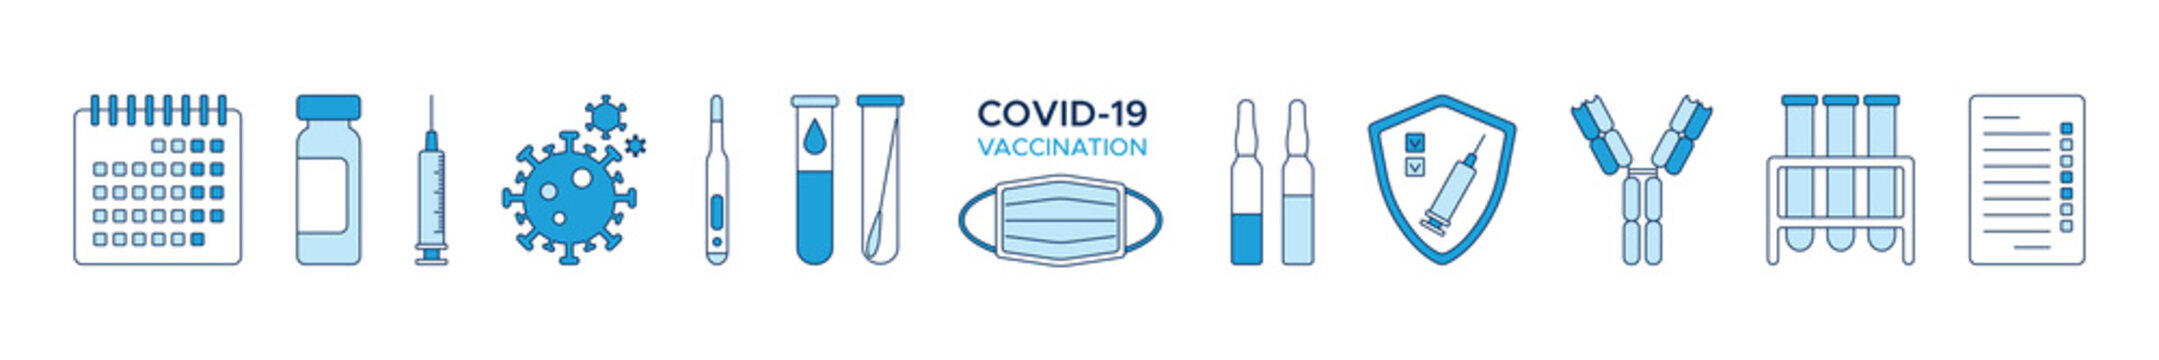 Set of icons COVID-19 vaccination, calendar, ampoules of vaccine, syringe, coronavirus, calendar, shield, test, blood test tube, thermometer and antibody. A medical designe elements in shades of blue